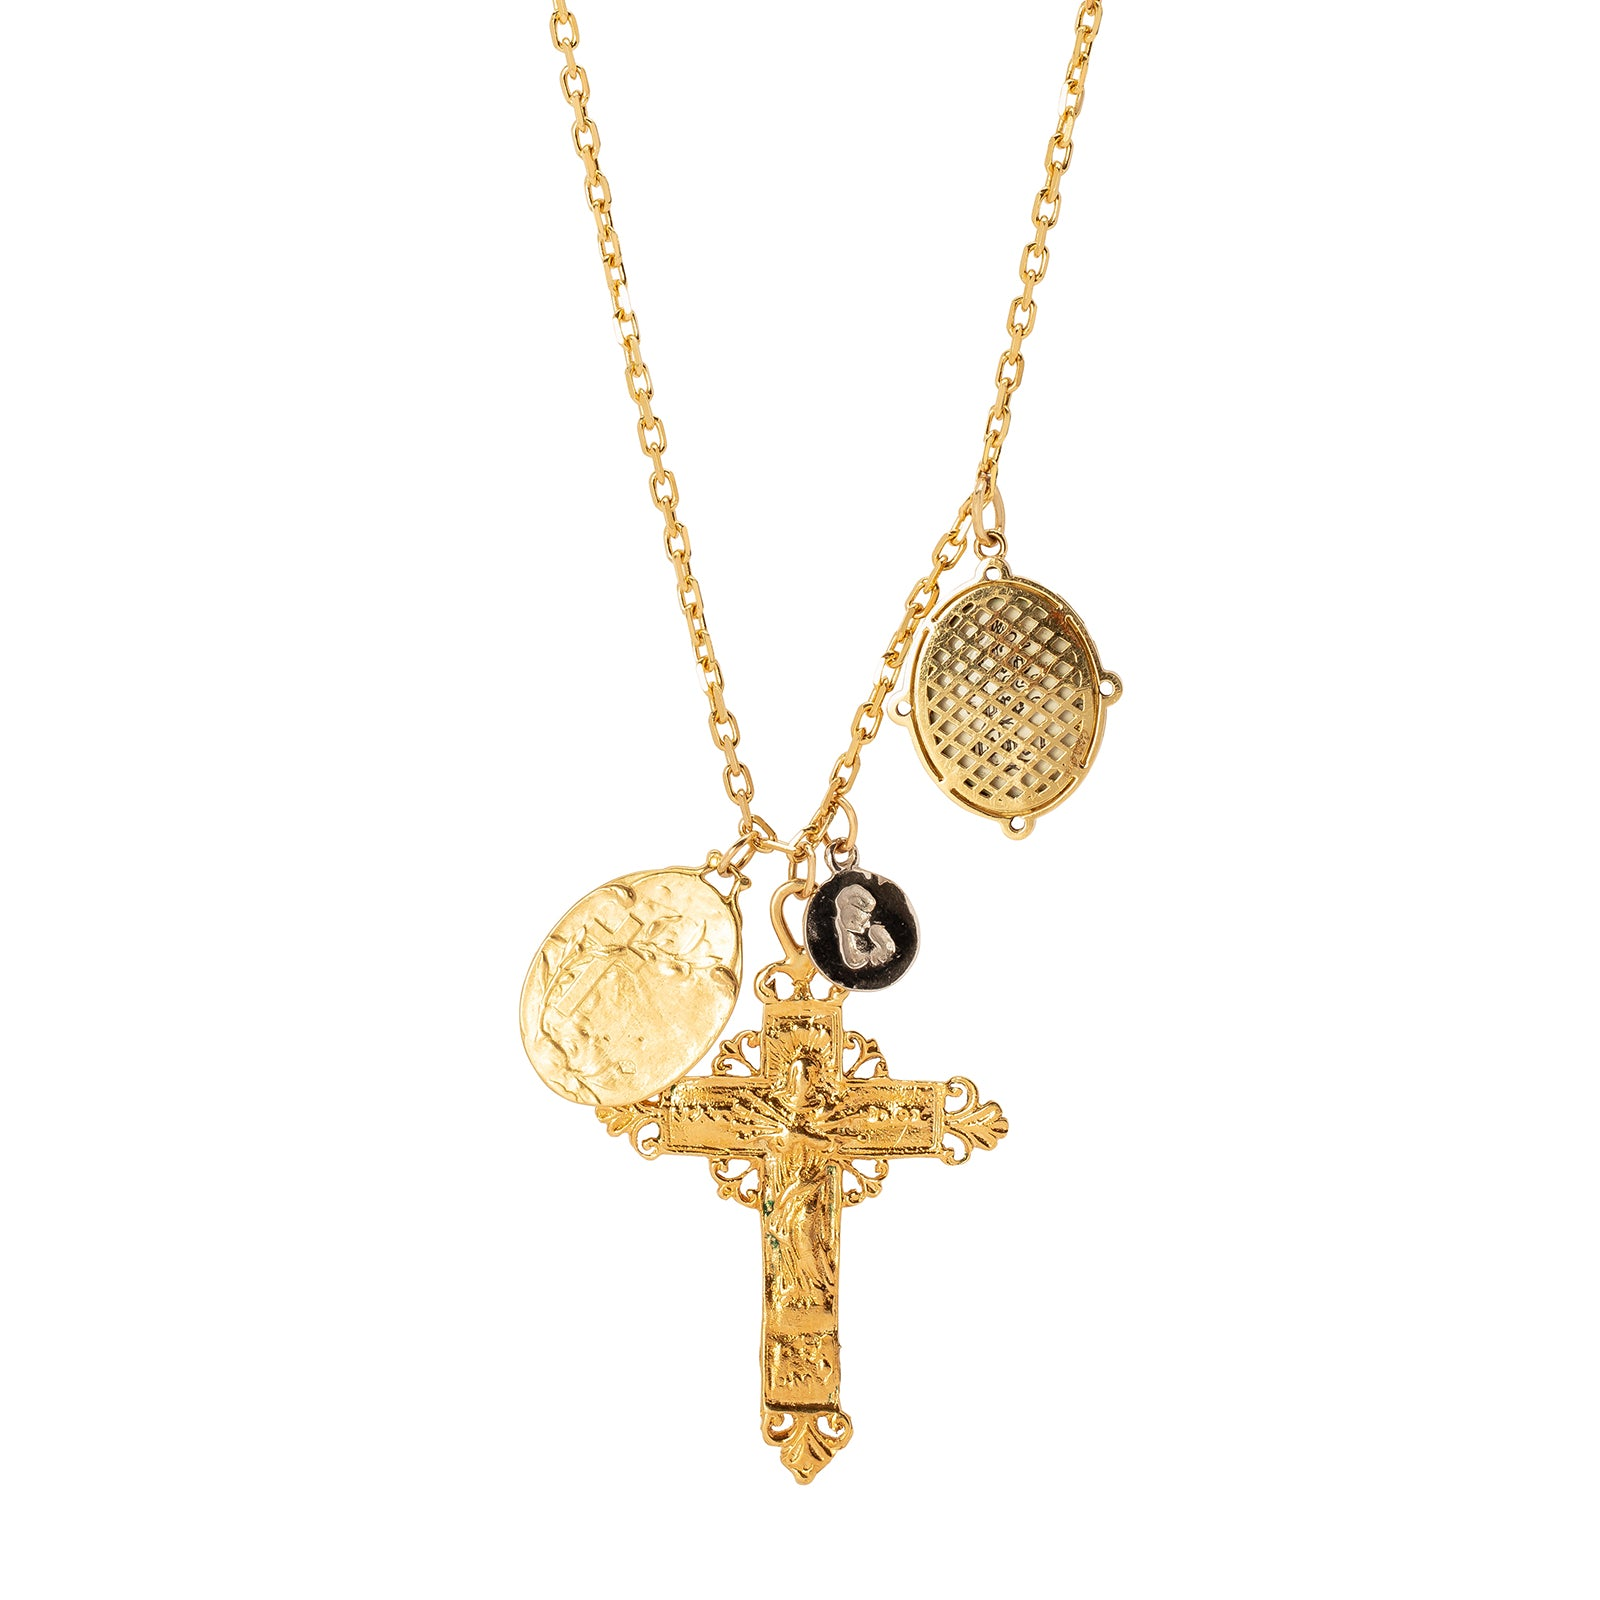 Colette Cross & Mixed Medallion Necklace - Necklaces - Broken English Jewelry